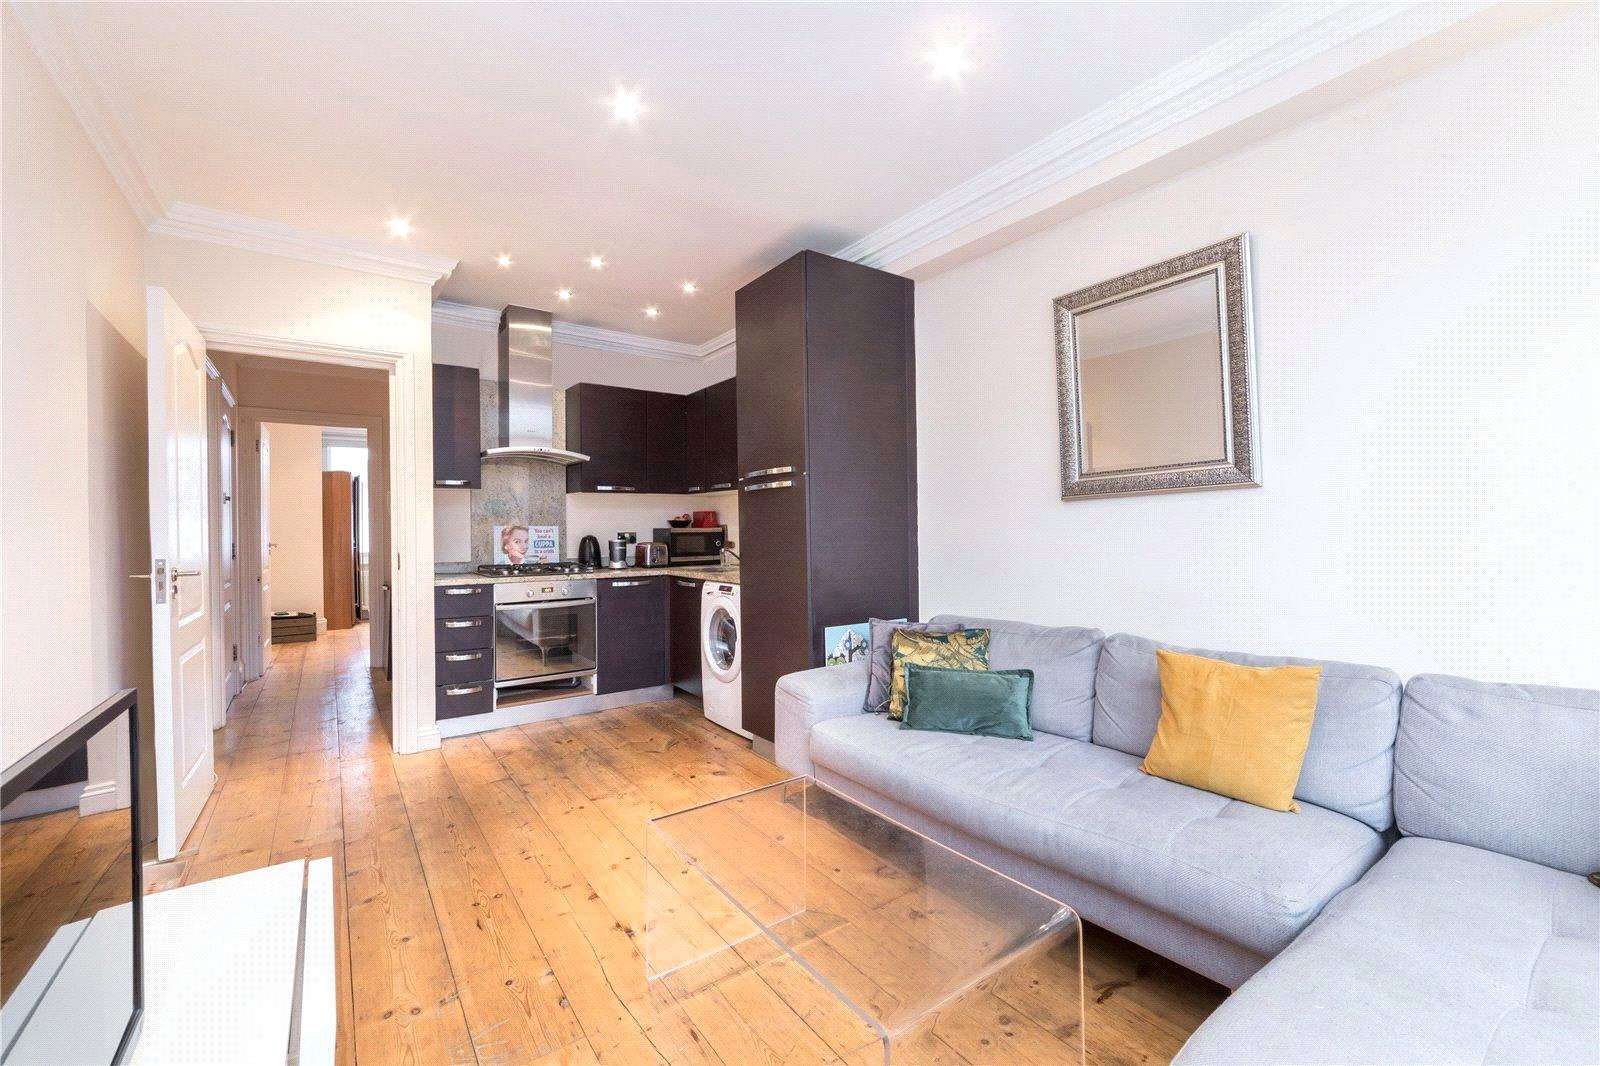 2 bed apartment to rent in Arsenal, N5 1LU 1